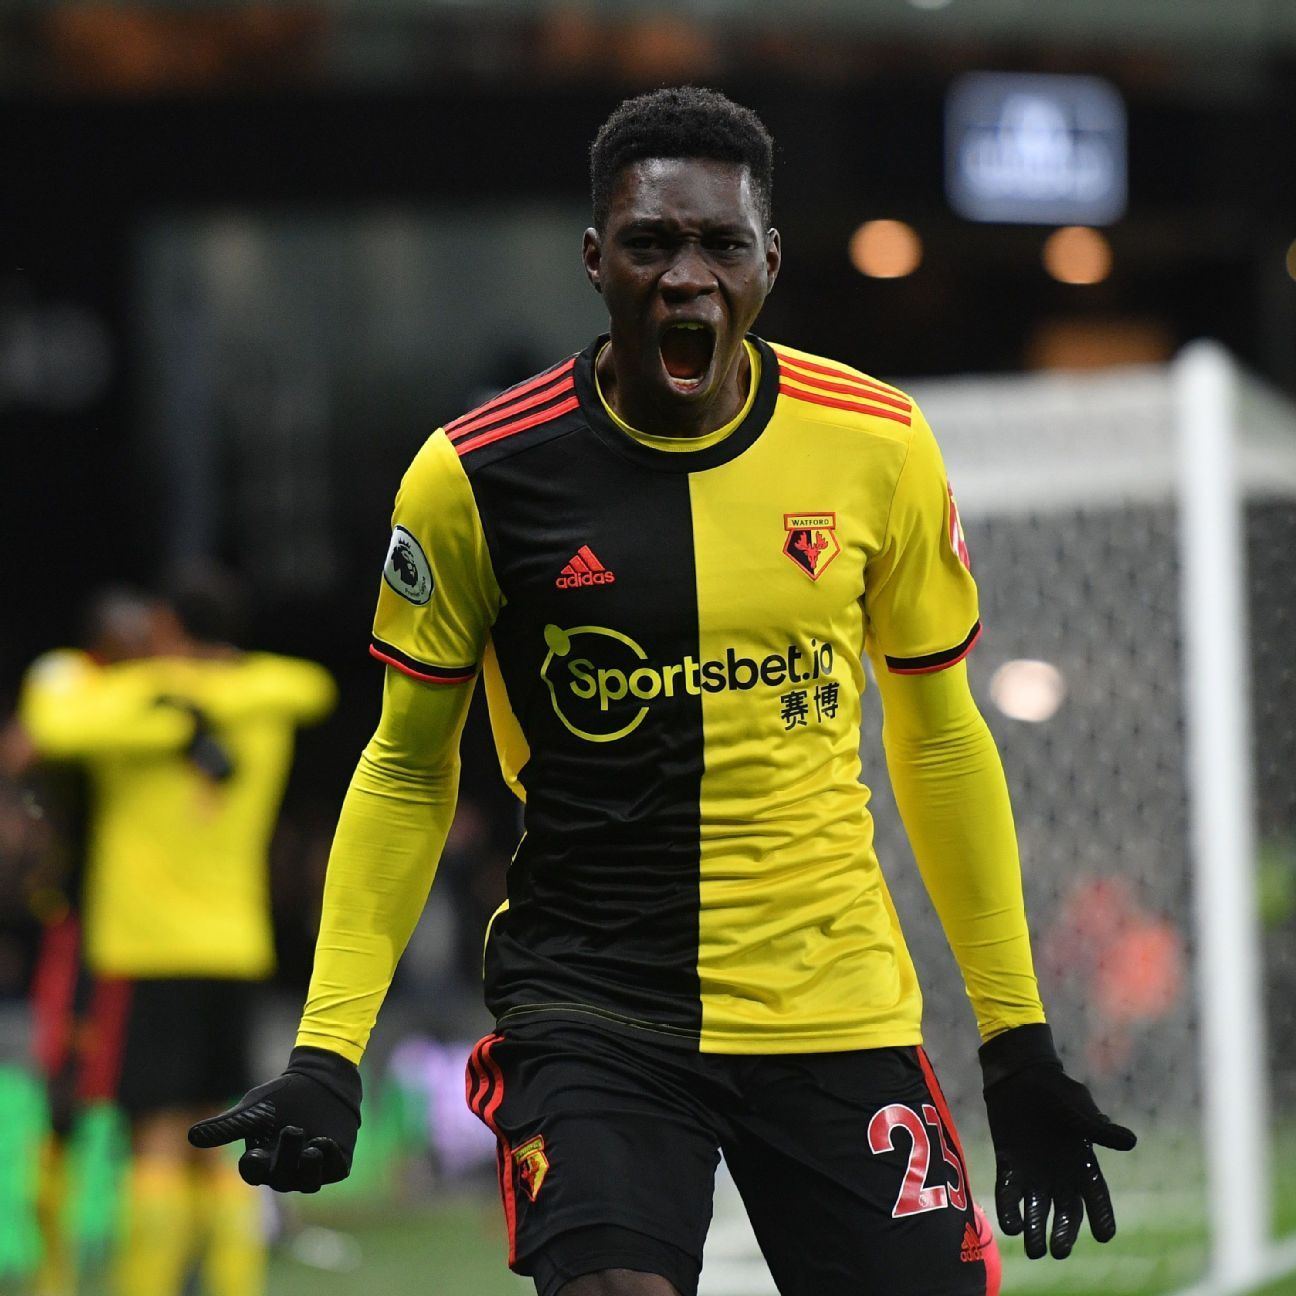 Watford vs. Liverpool Football Match Report February